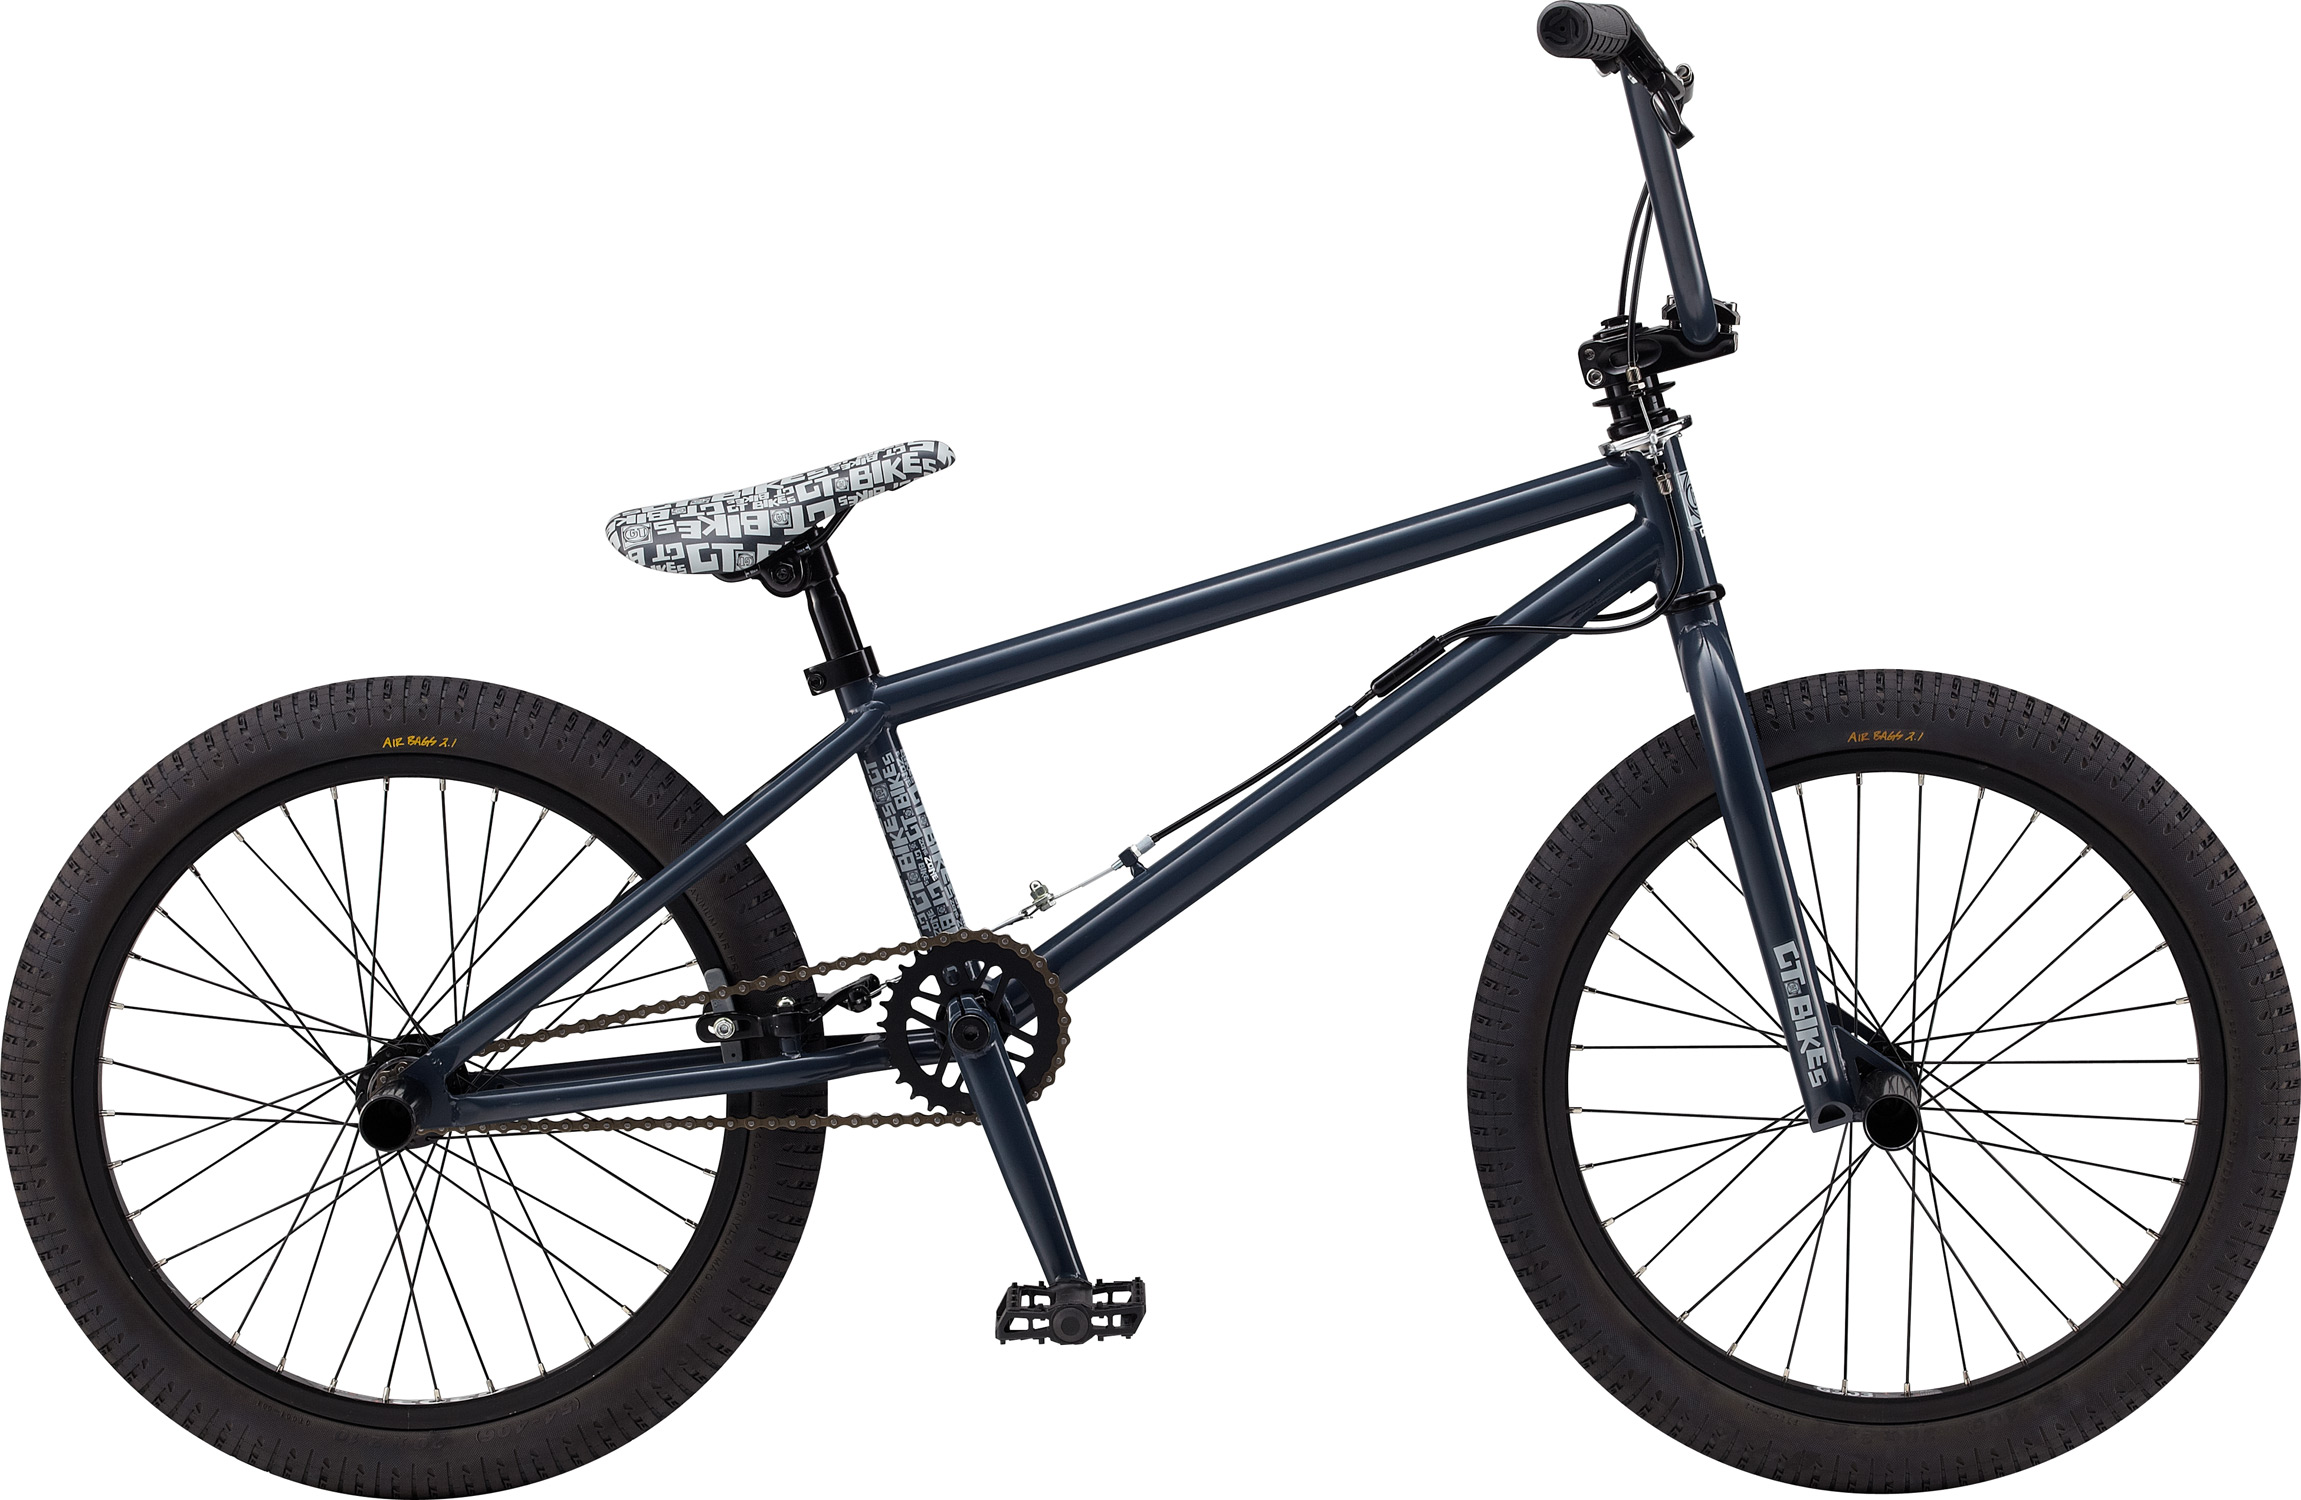 "BMX Key Features of the GT Zone BMX Bike 20"": Frame: NEW Straight Gauge, Hi-Ten, Dumped C/S, LubidS/S, 14mm Dropouts, C/S Mounted Brake Mounts Front Suspension: GT, Full Hi-Ten, 31.8-28.6 Taper, 3/8, 1 1/8"" Crankset: GT 3 Pcs Cro-Mo, 8T, 170mm 28T Steel Wheels/Hubs: GT AL Cassette Loose Ball,3/8""F, 14mmr 32F, 36R Hole Brakes: Tektro FX340R - $239.95"